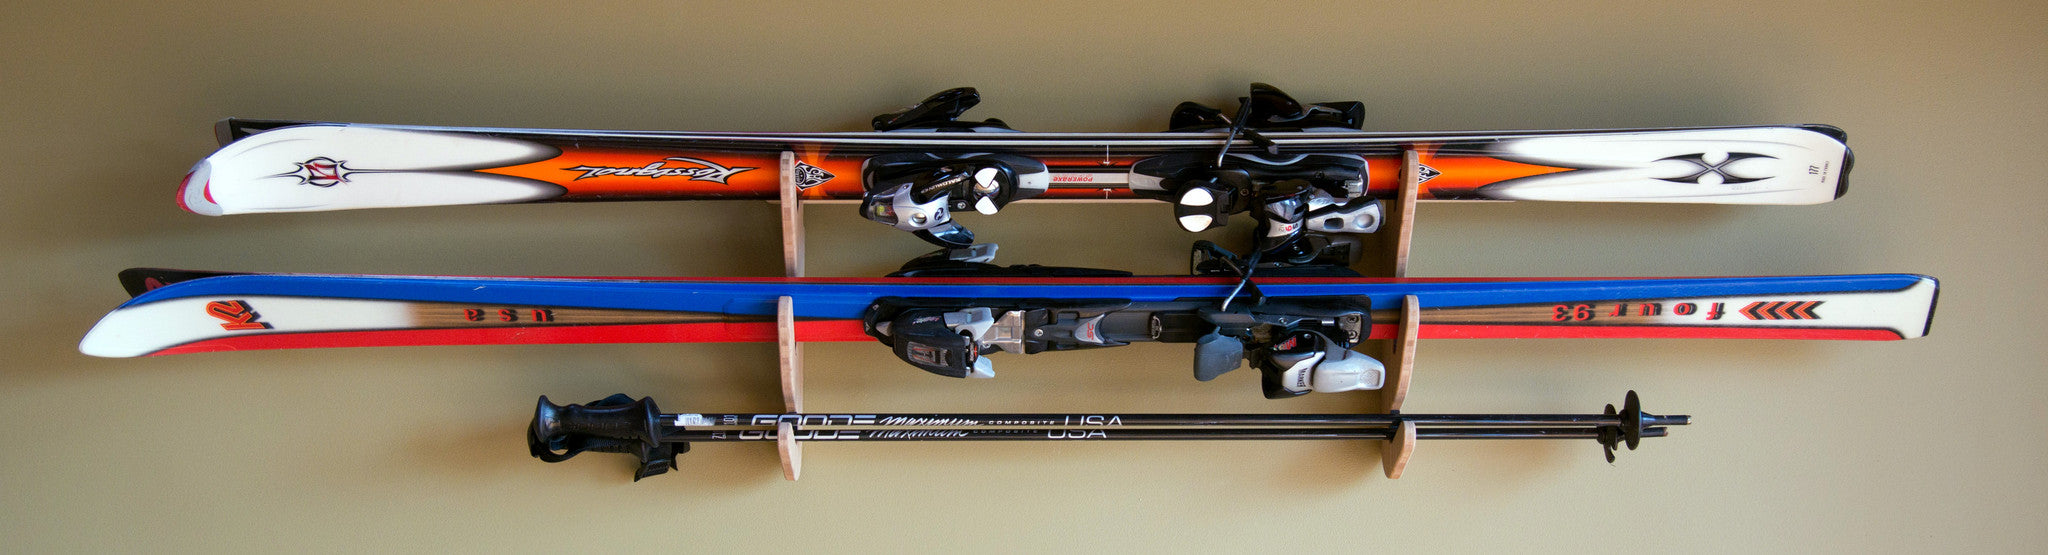 indoor wall mount ski rack